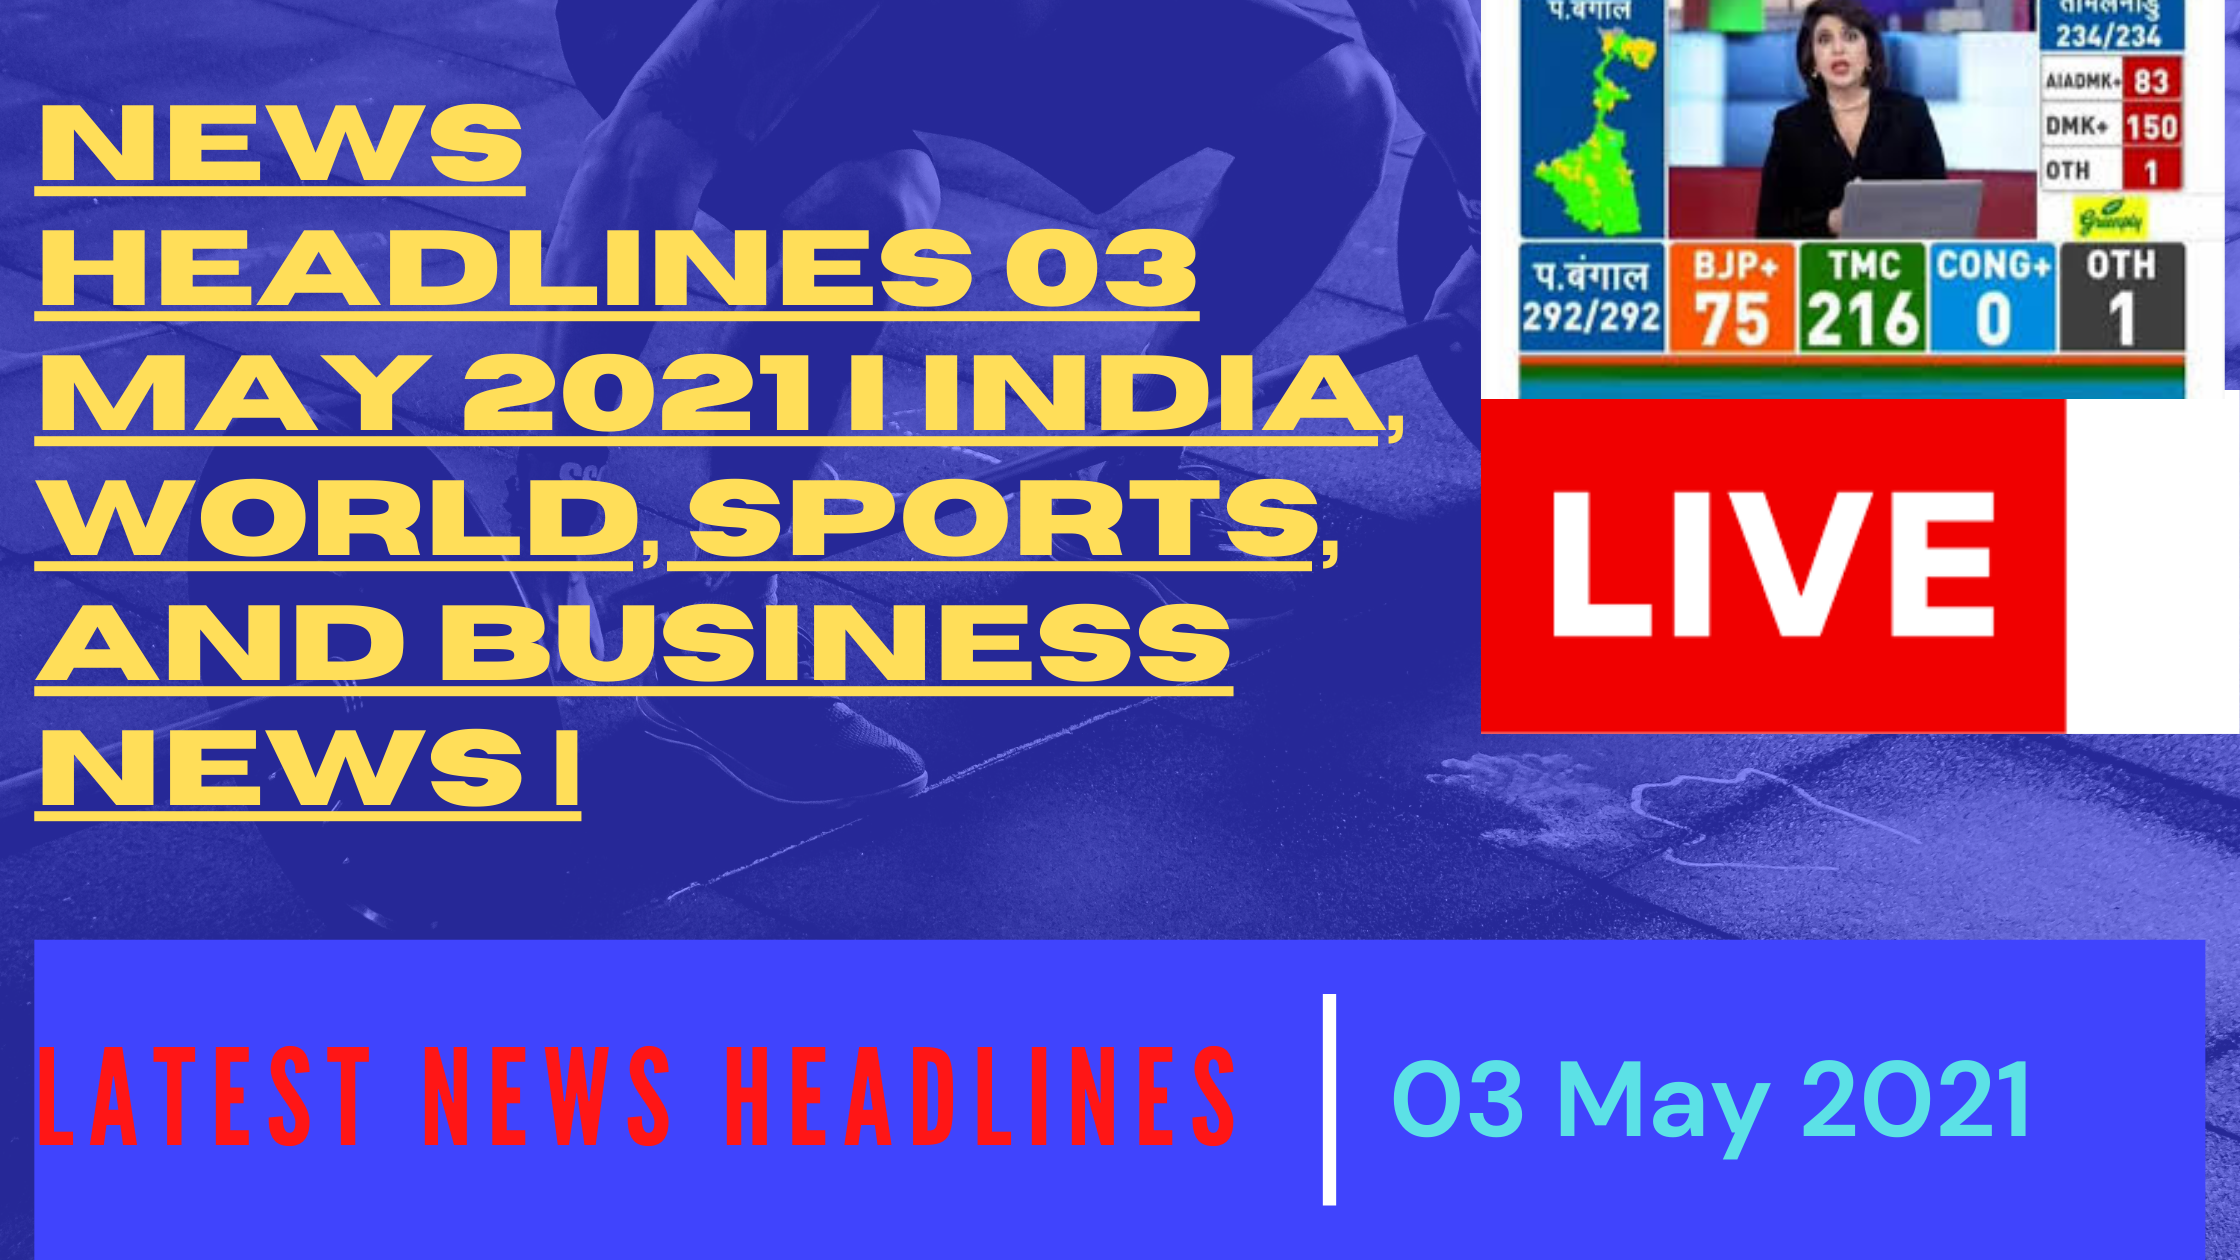 News Headlines 03 May 2021